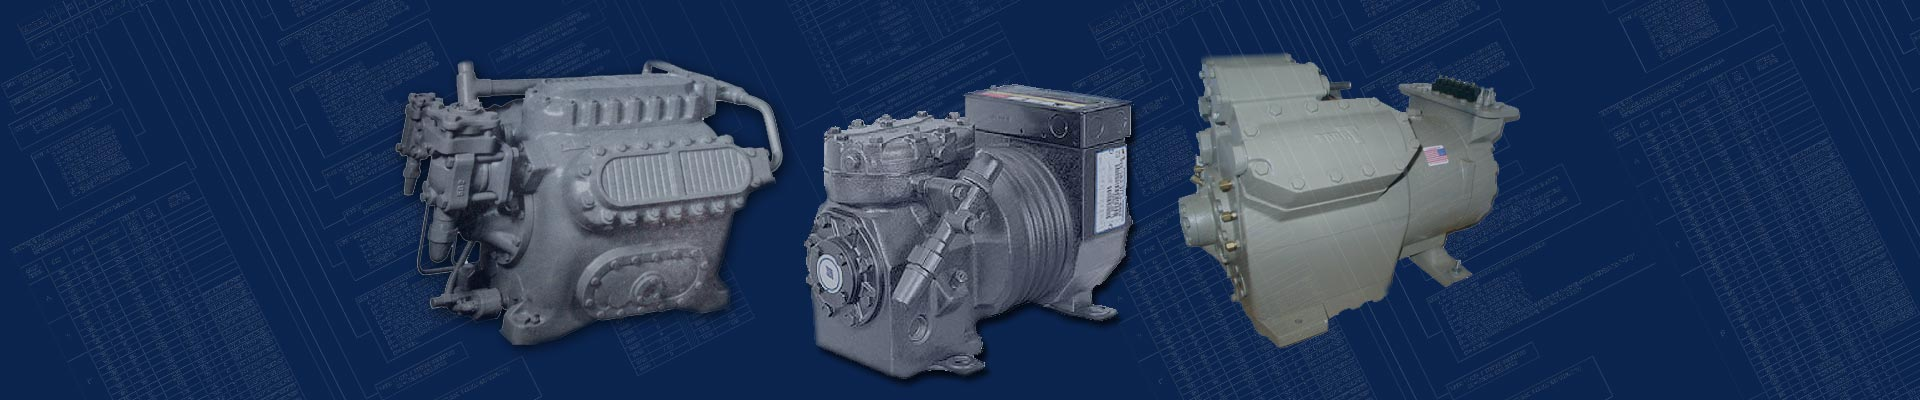 Buy Compressors Direct<br> Save 30 to 60% OFF